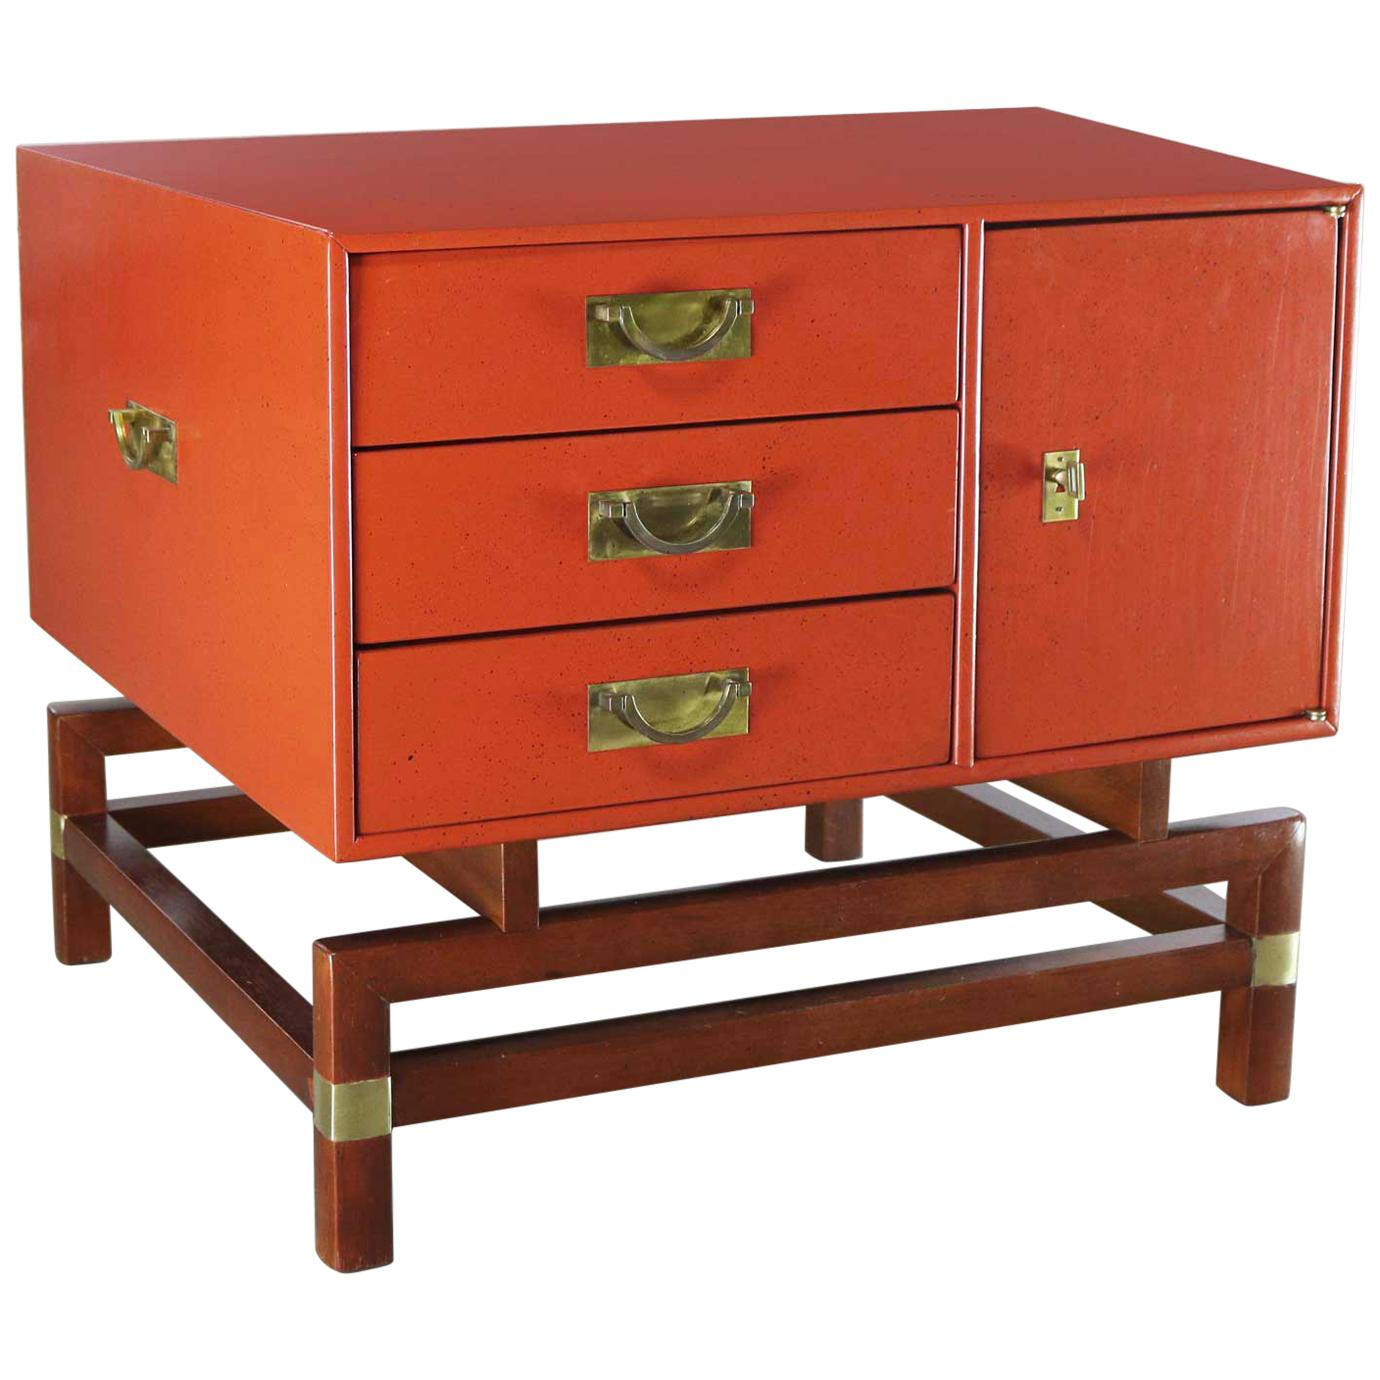 Ordinaire Vintage Red Campaign Style End Table Drawers And Door U0026 Brass Detail By  Hickory